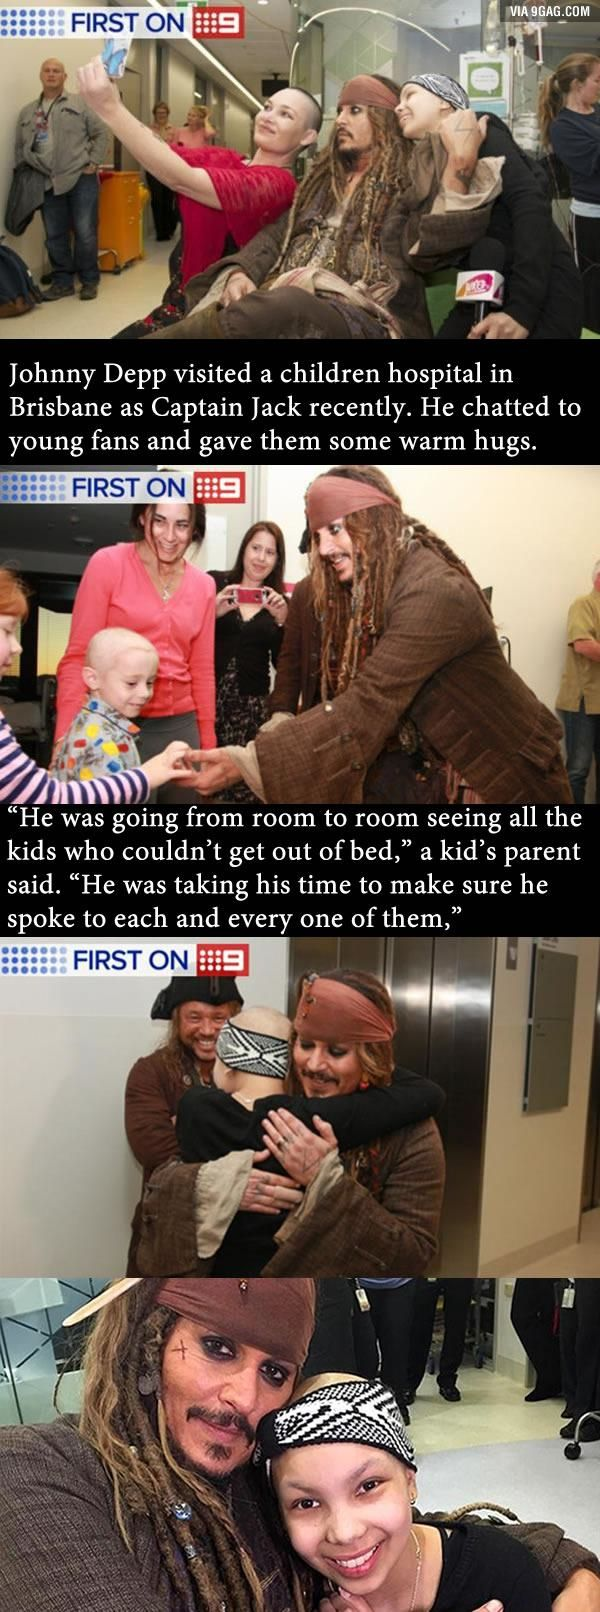 Johnny Depp visiting a children's hospital dressed as Captain Jack Sparrow. Not for the publicity!